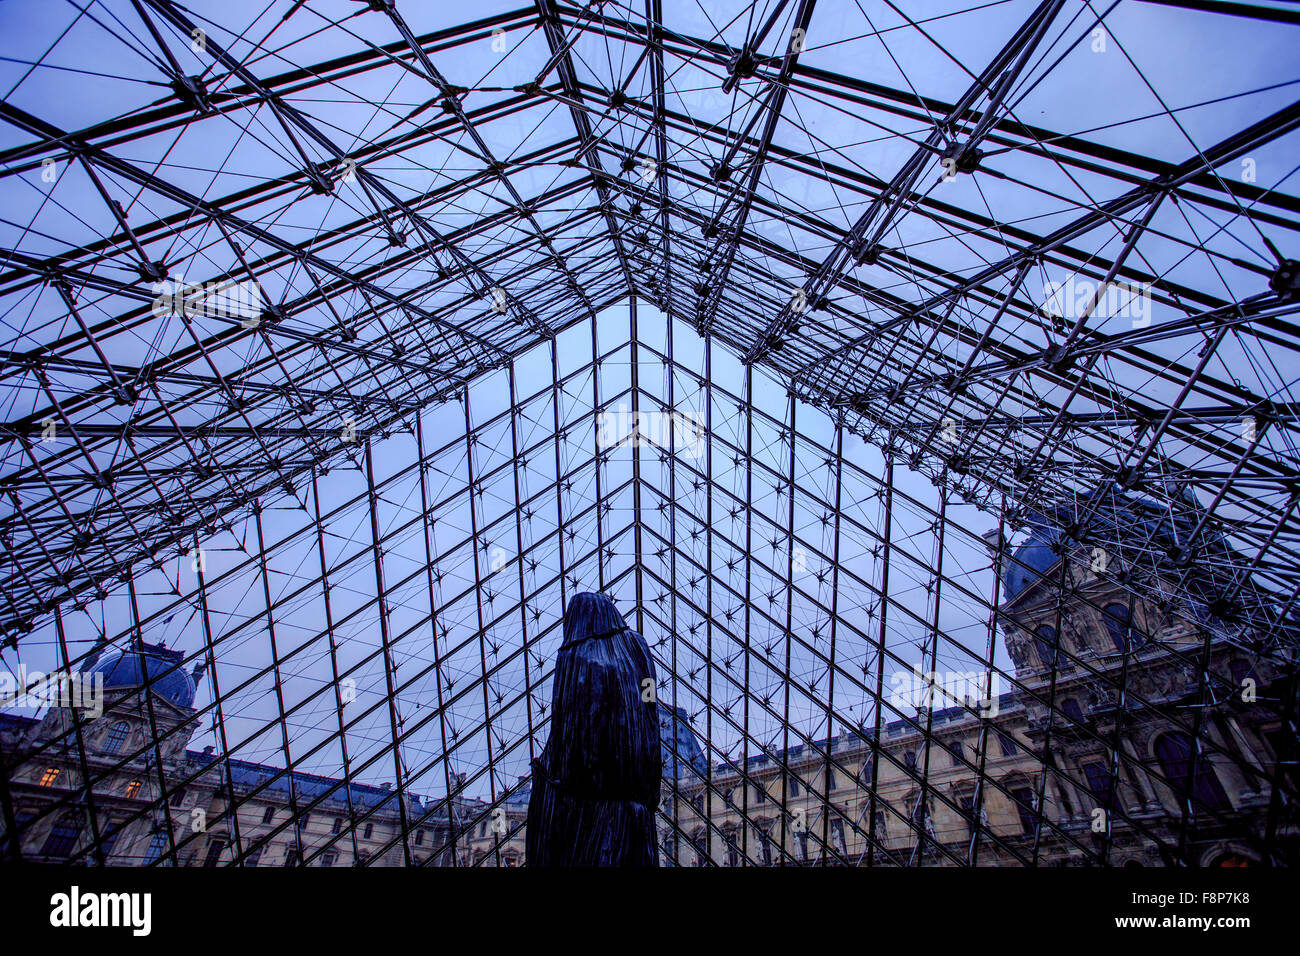 Inside Glass Pyramid Exit Louvre Stock Photos & Inside Glass Pyramid ...